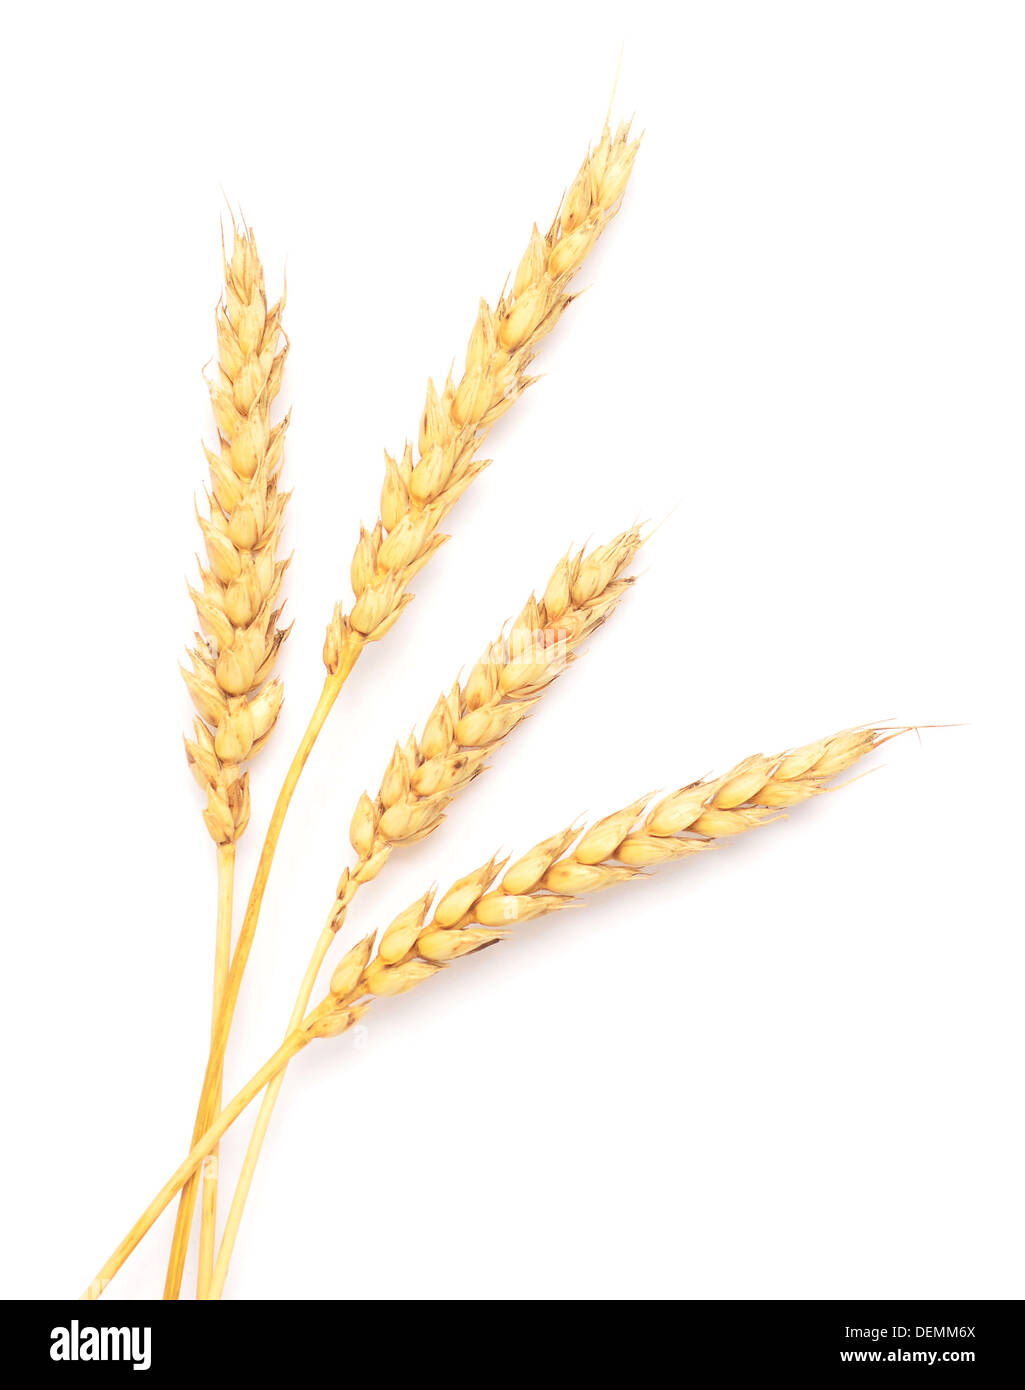 wheat ears - Stock Image